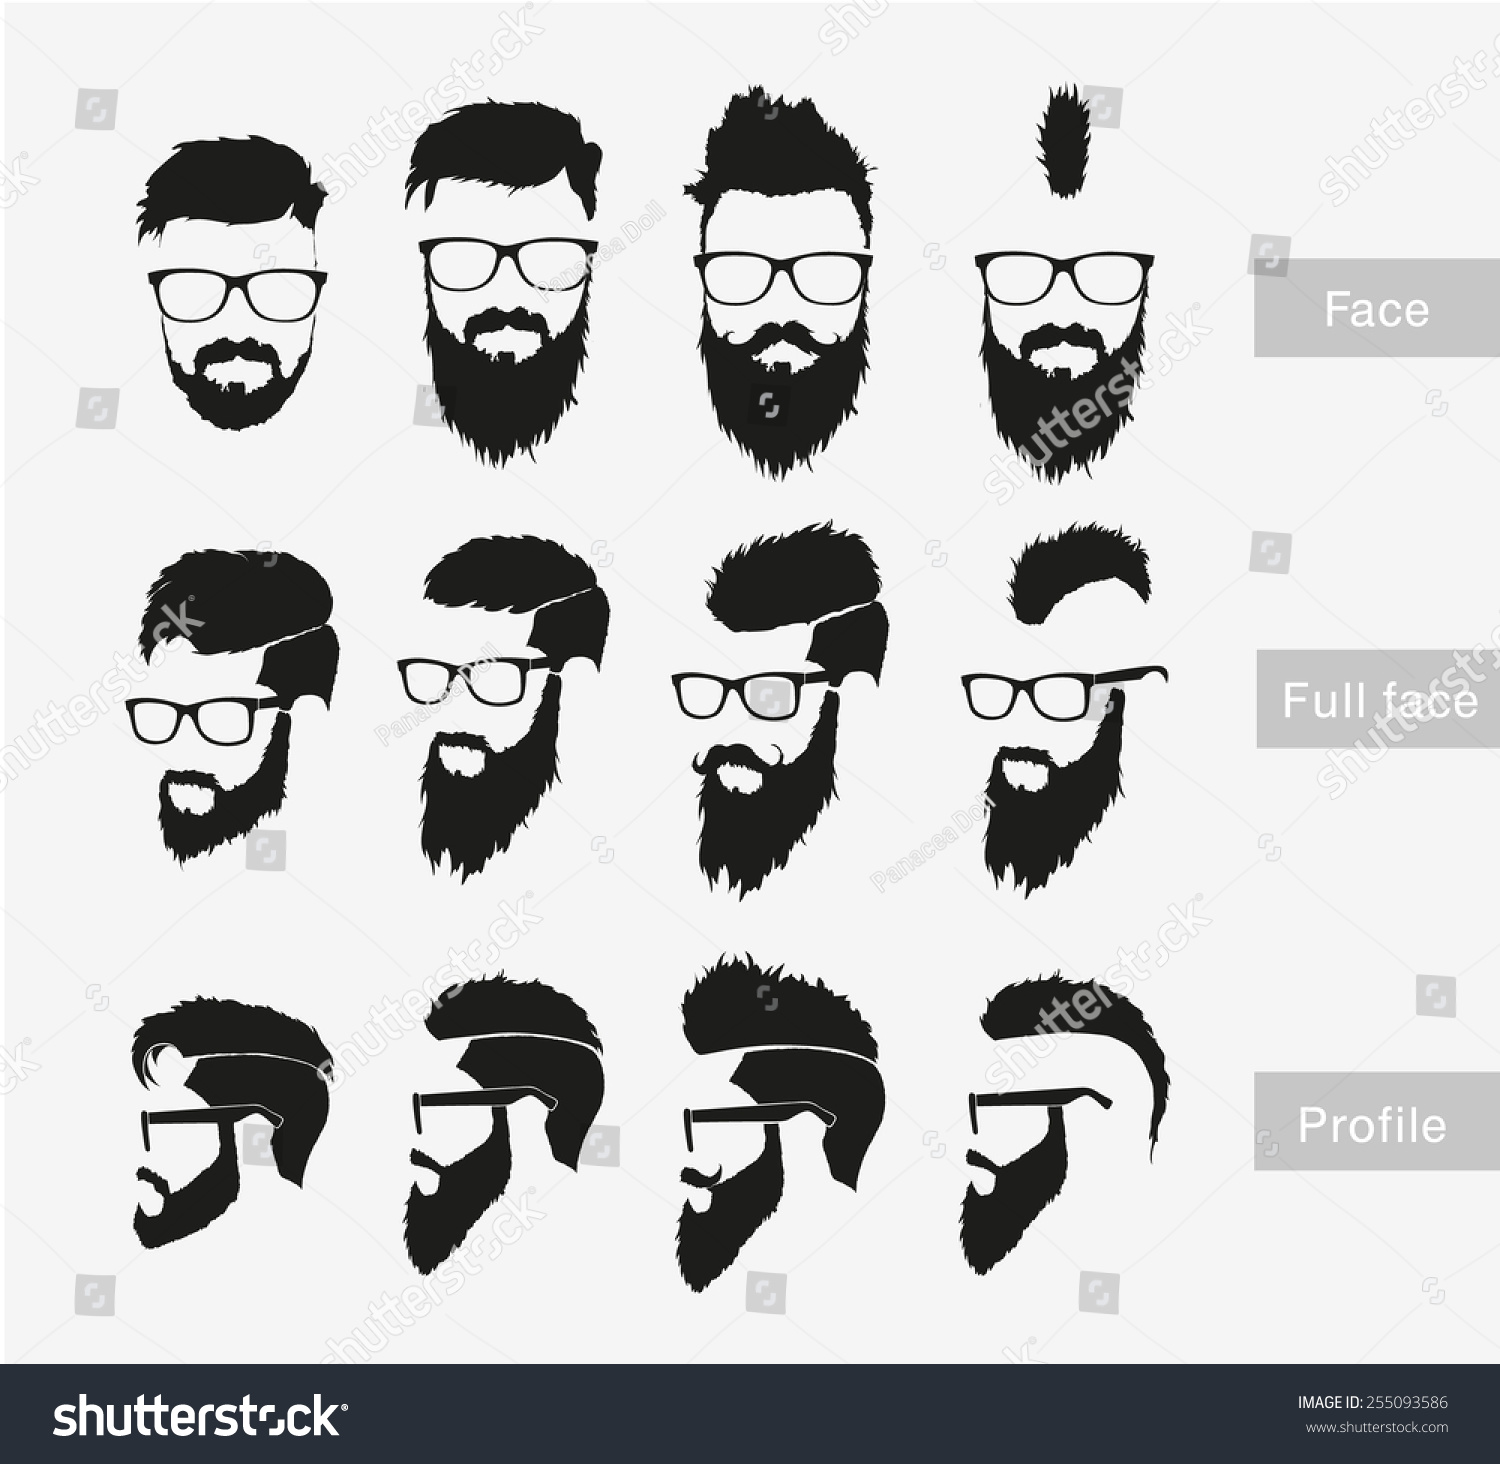 Hairstyles Beard Face Full Face Profile Stock Vector 255093586 Shutterstock